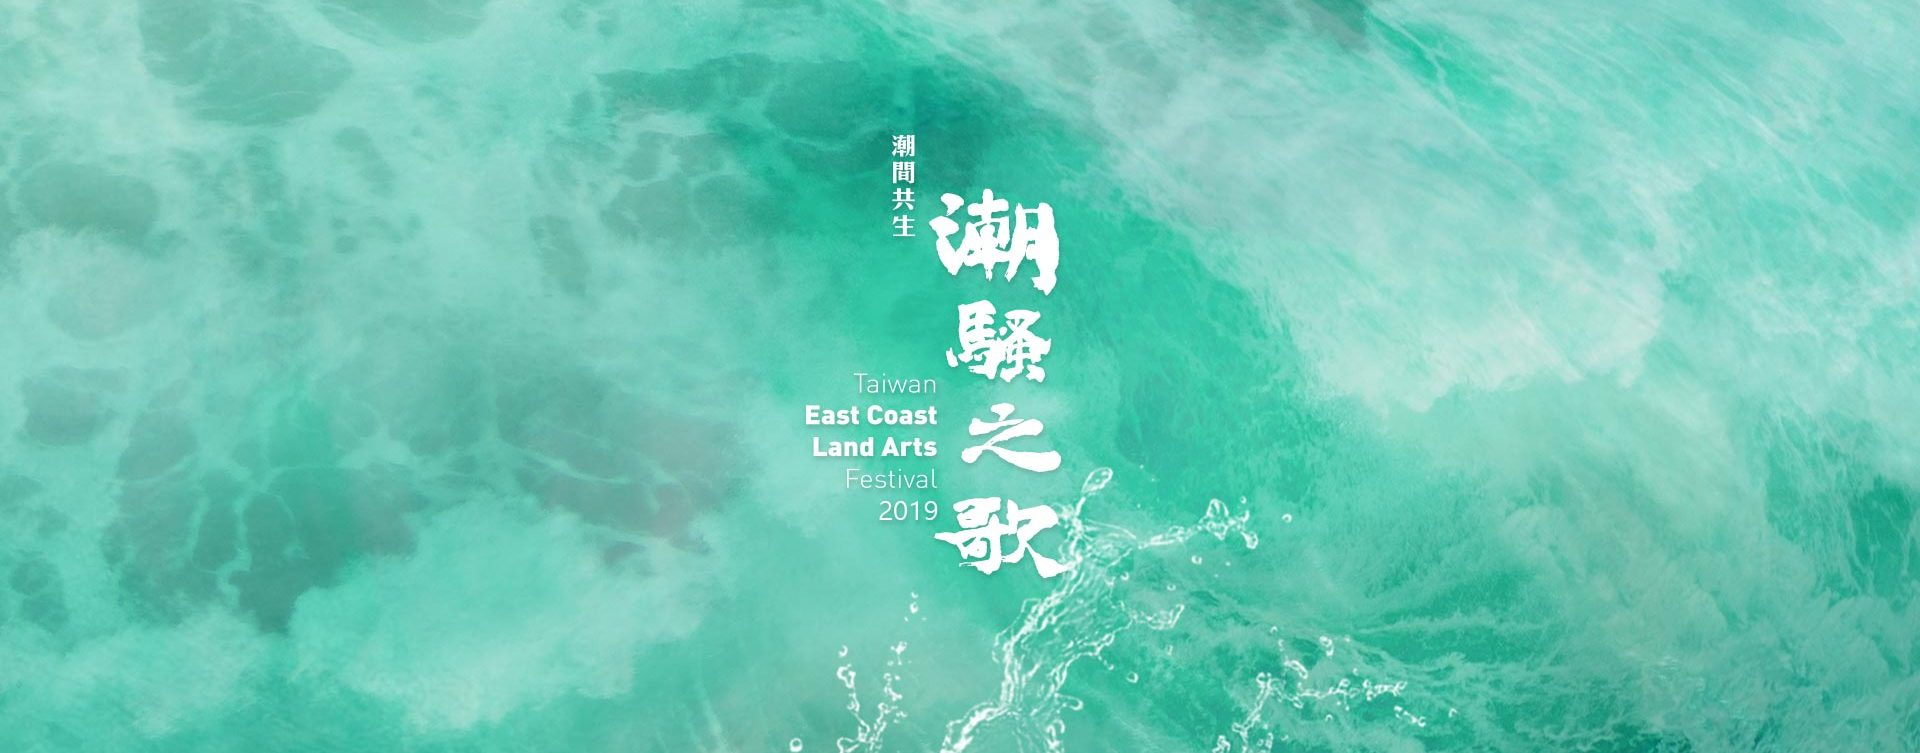 Taiwan East Coast Land Art Festival 2019